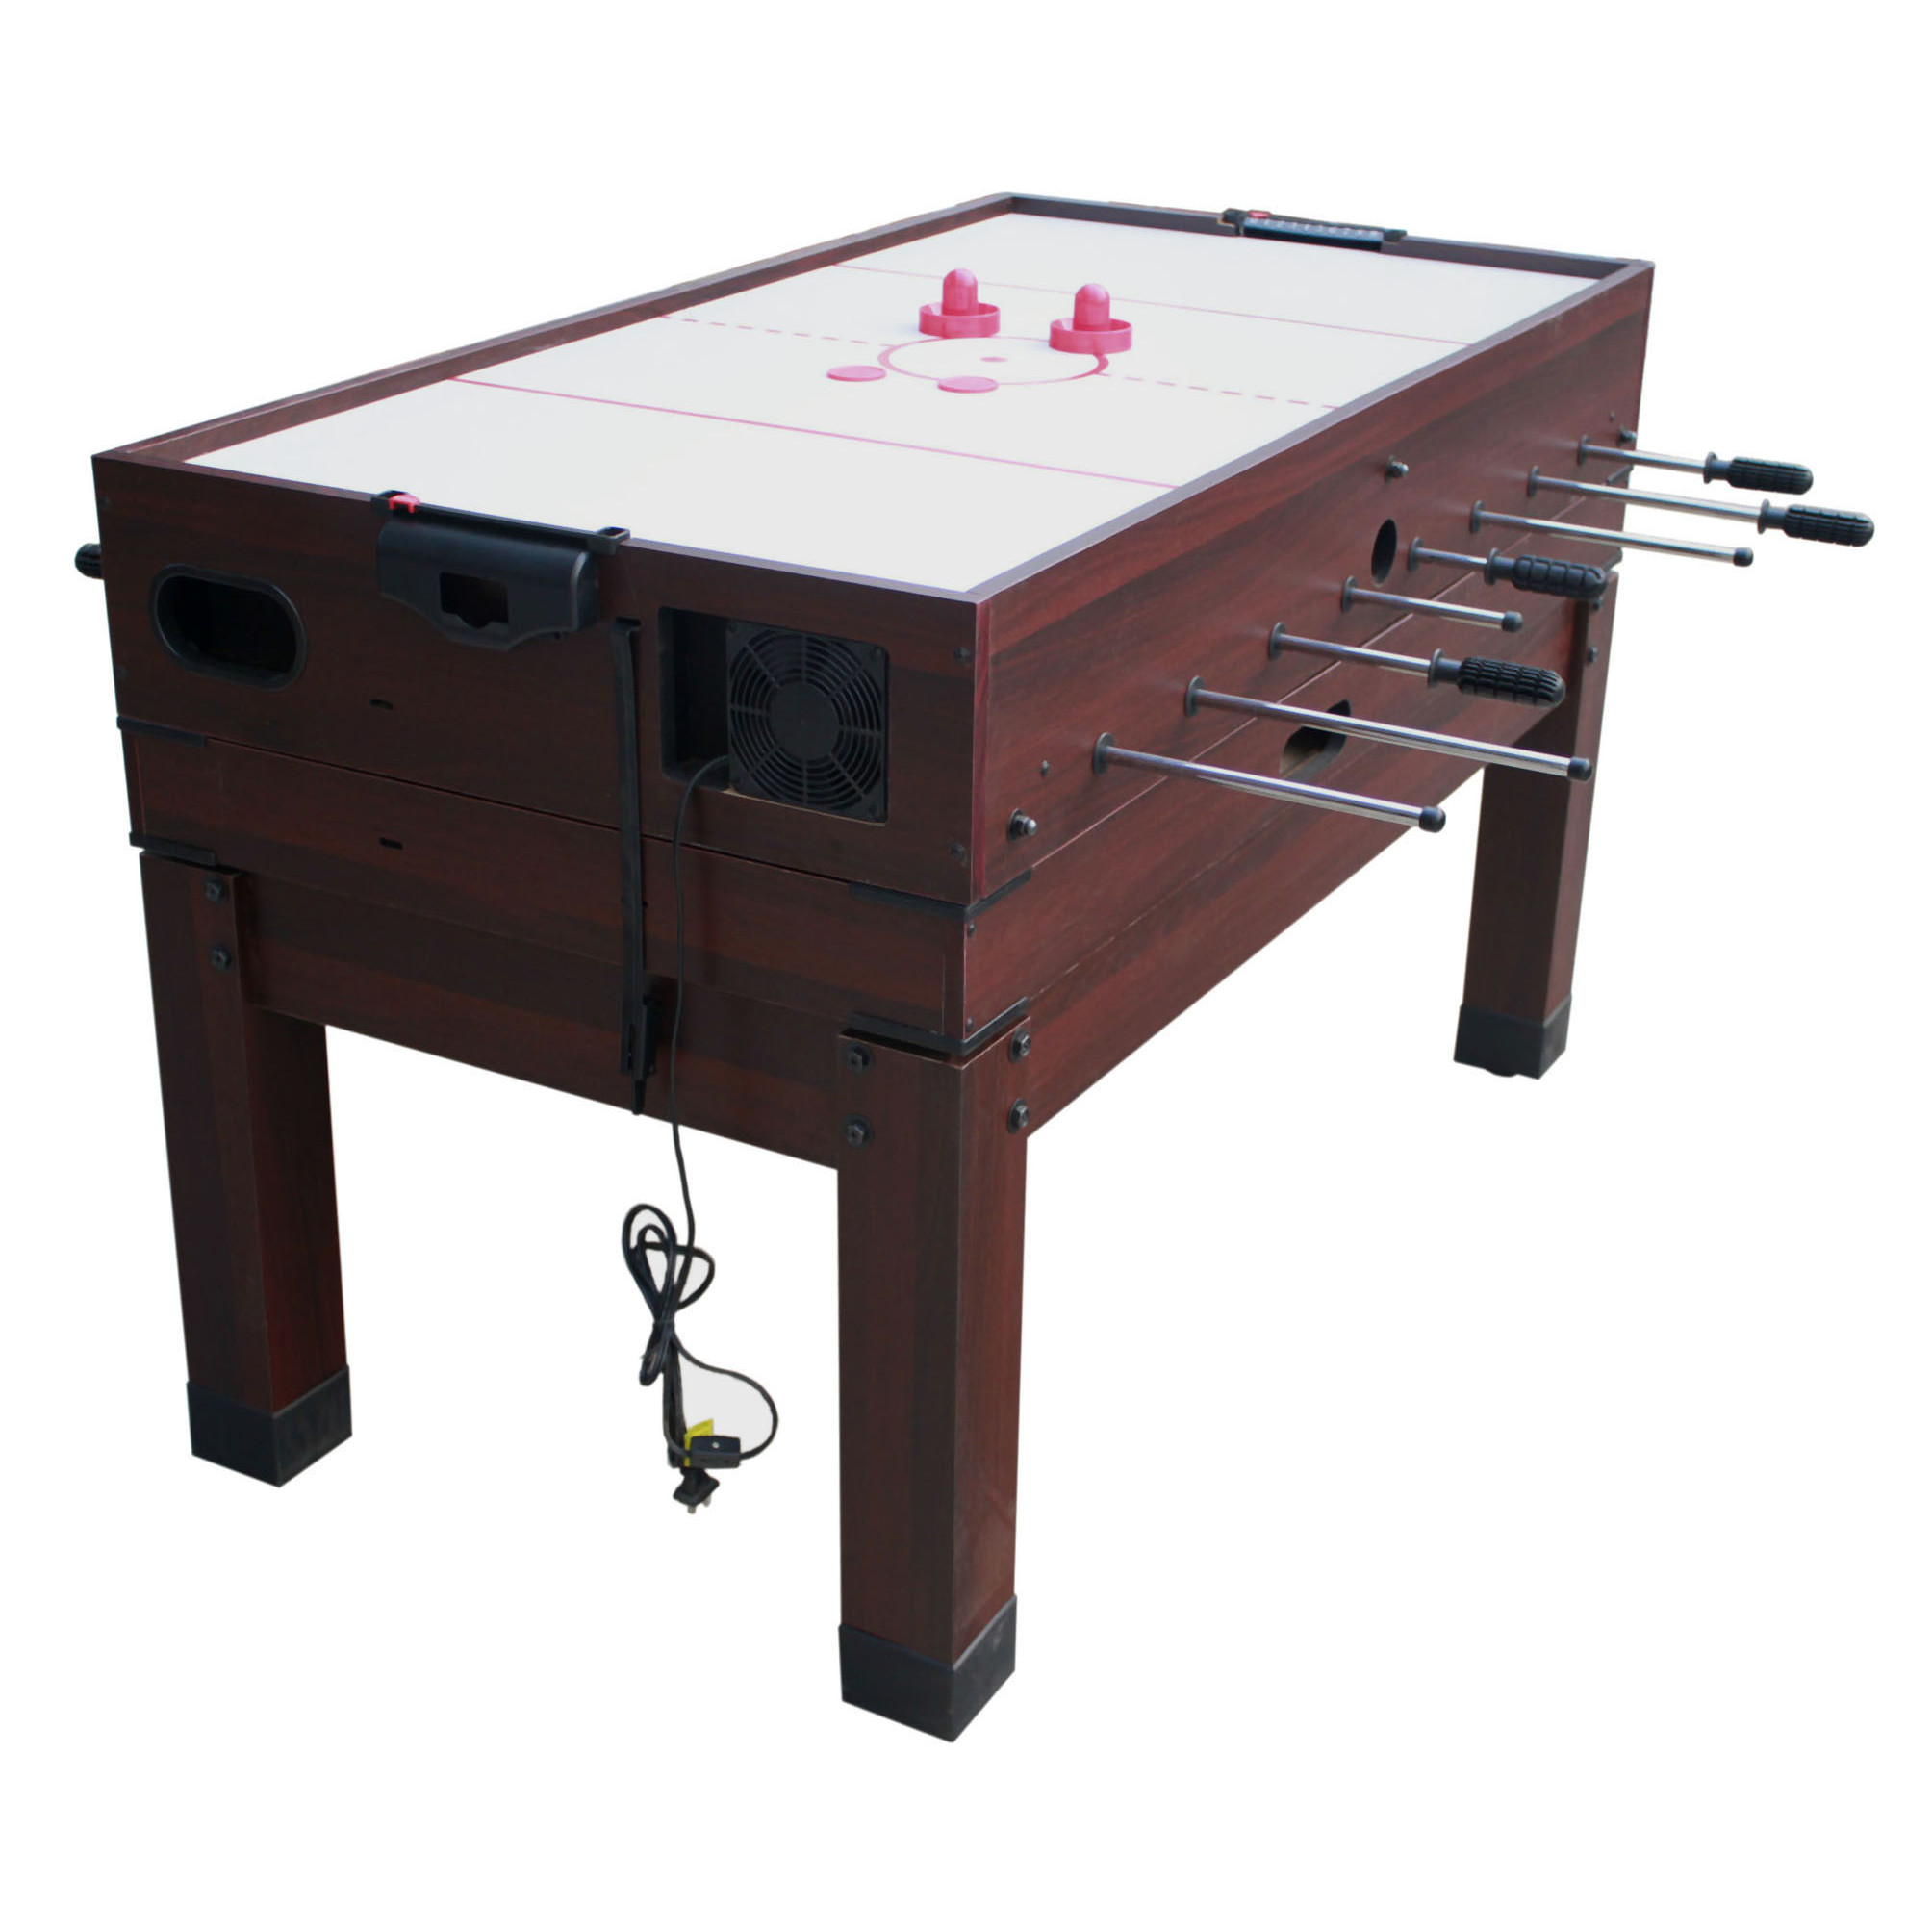 14-in-1 Game Table